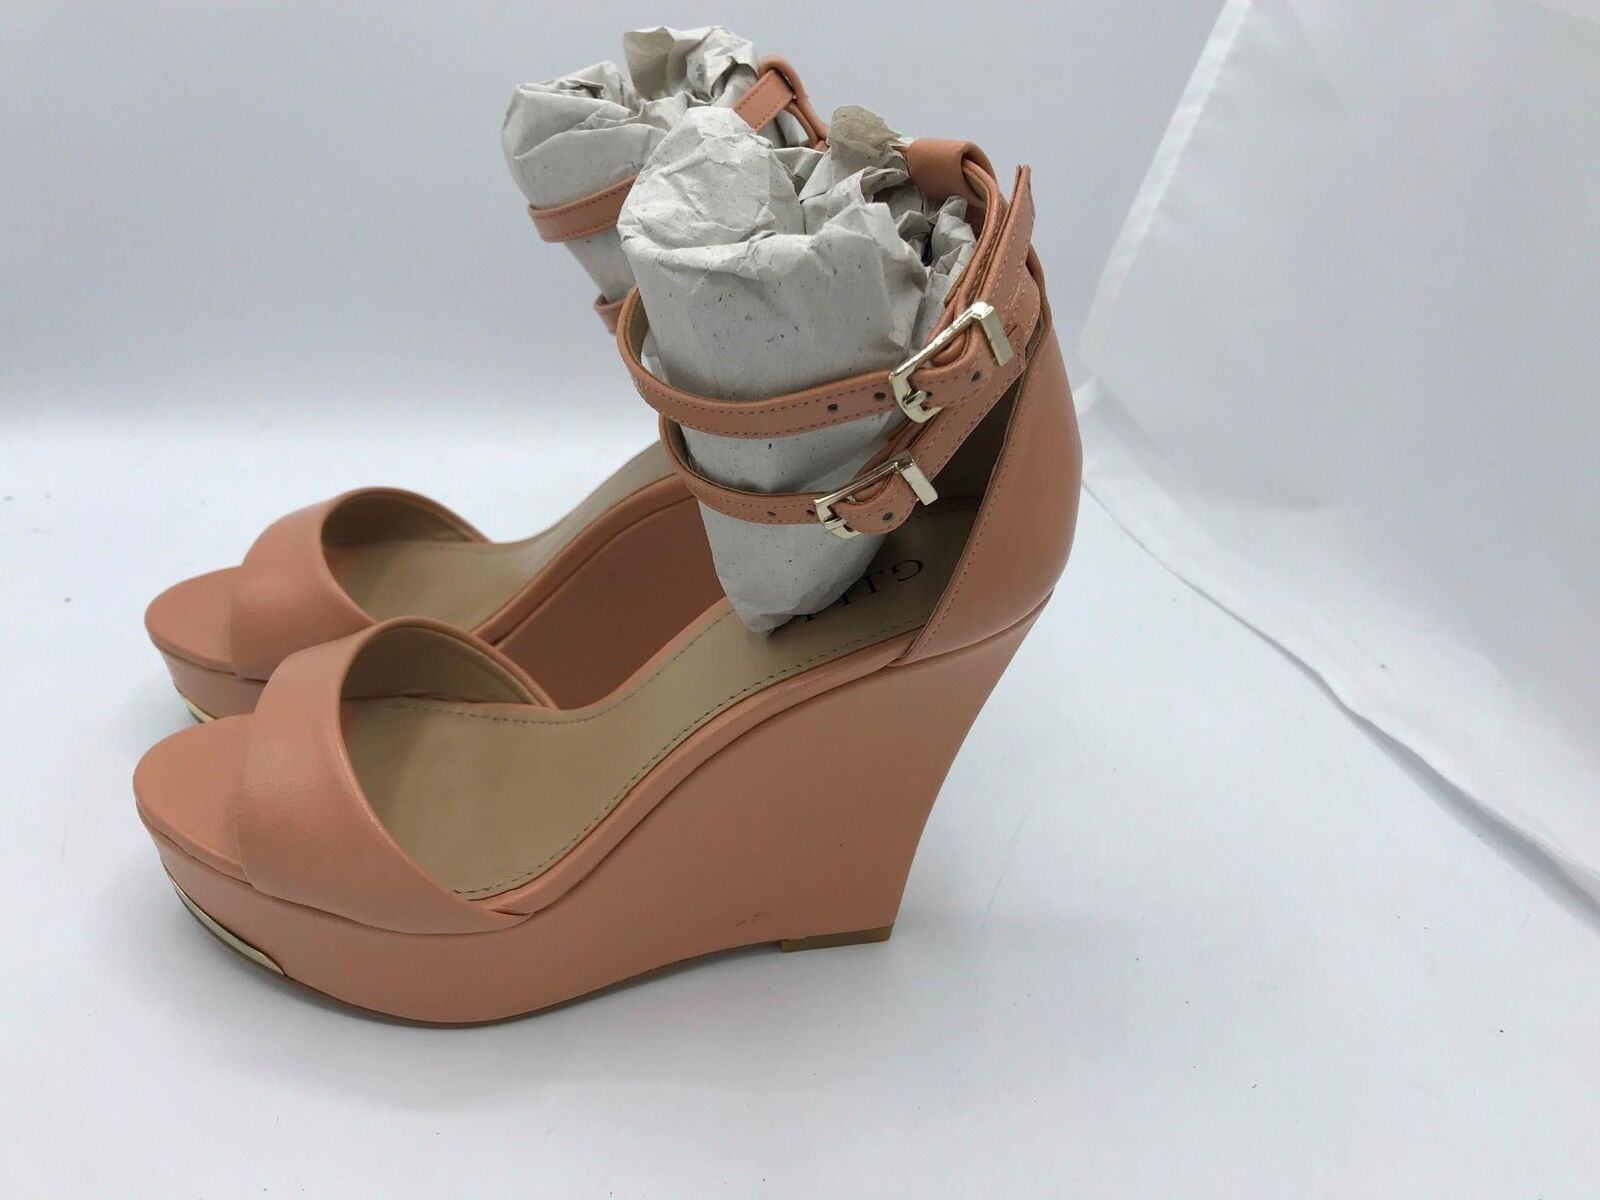 G.I.L.I. Leather Ankle-Strap Wedges-Avery (1654) Apricot Sz 5.5M